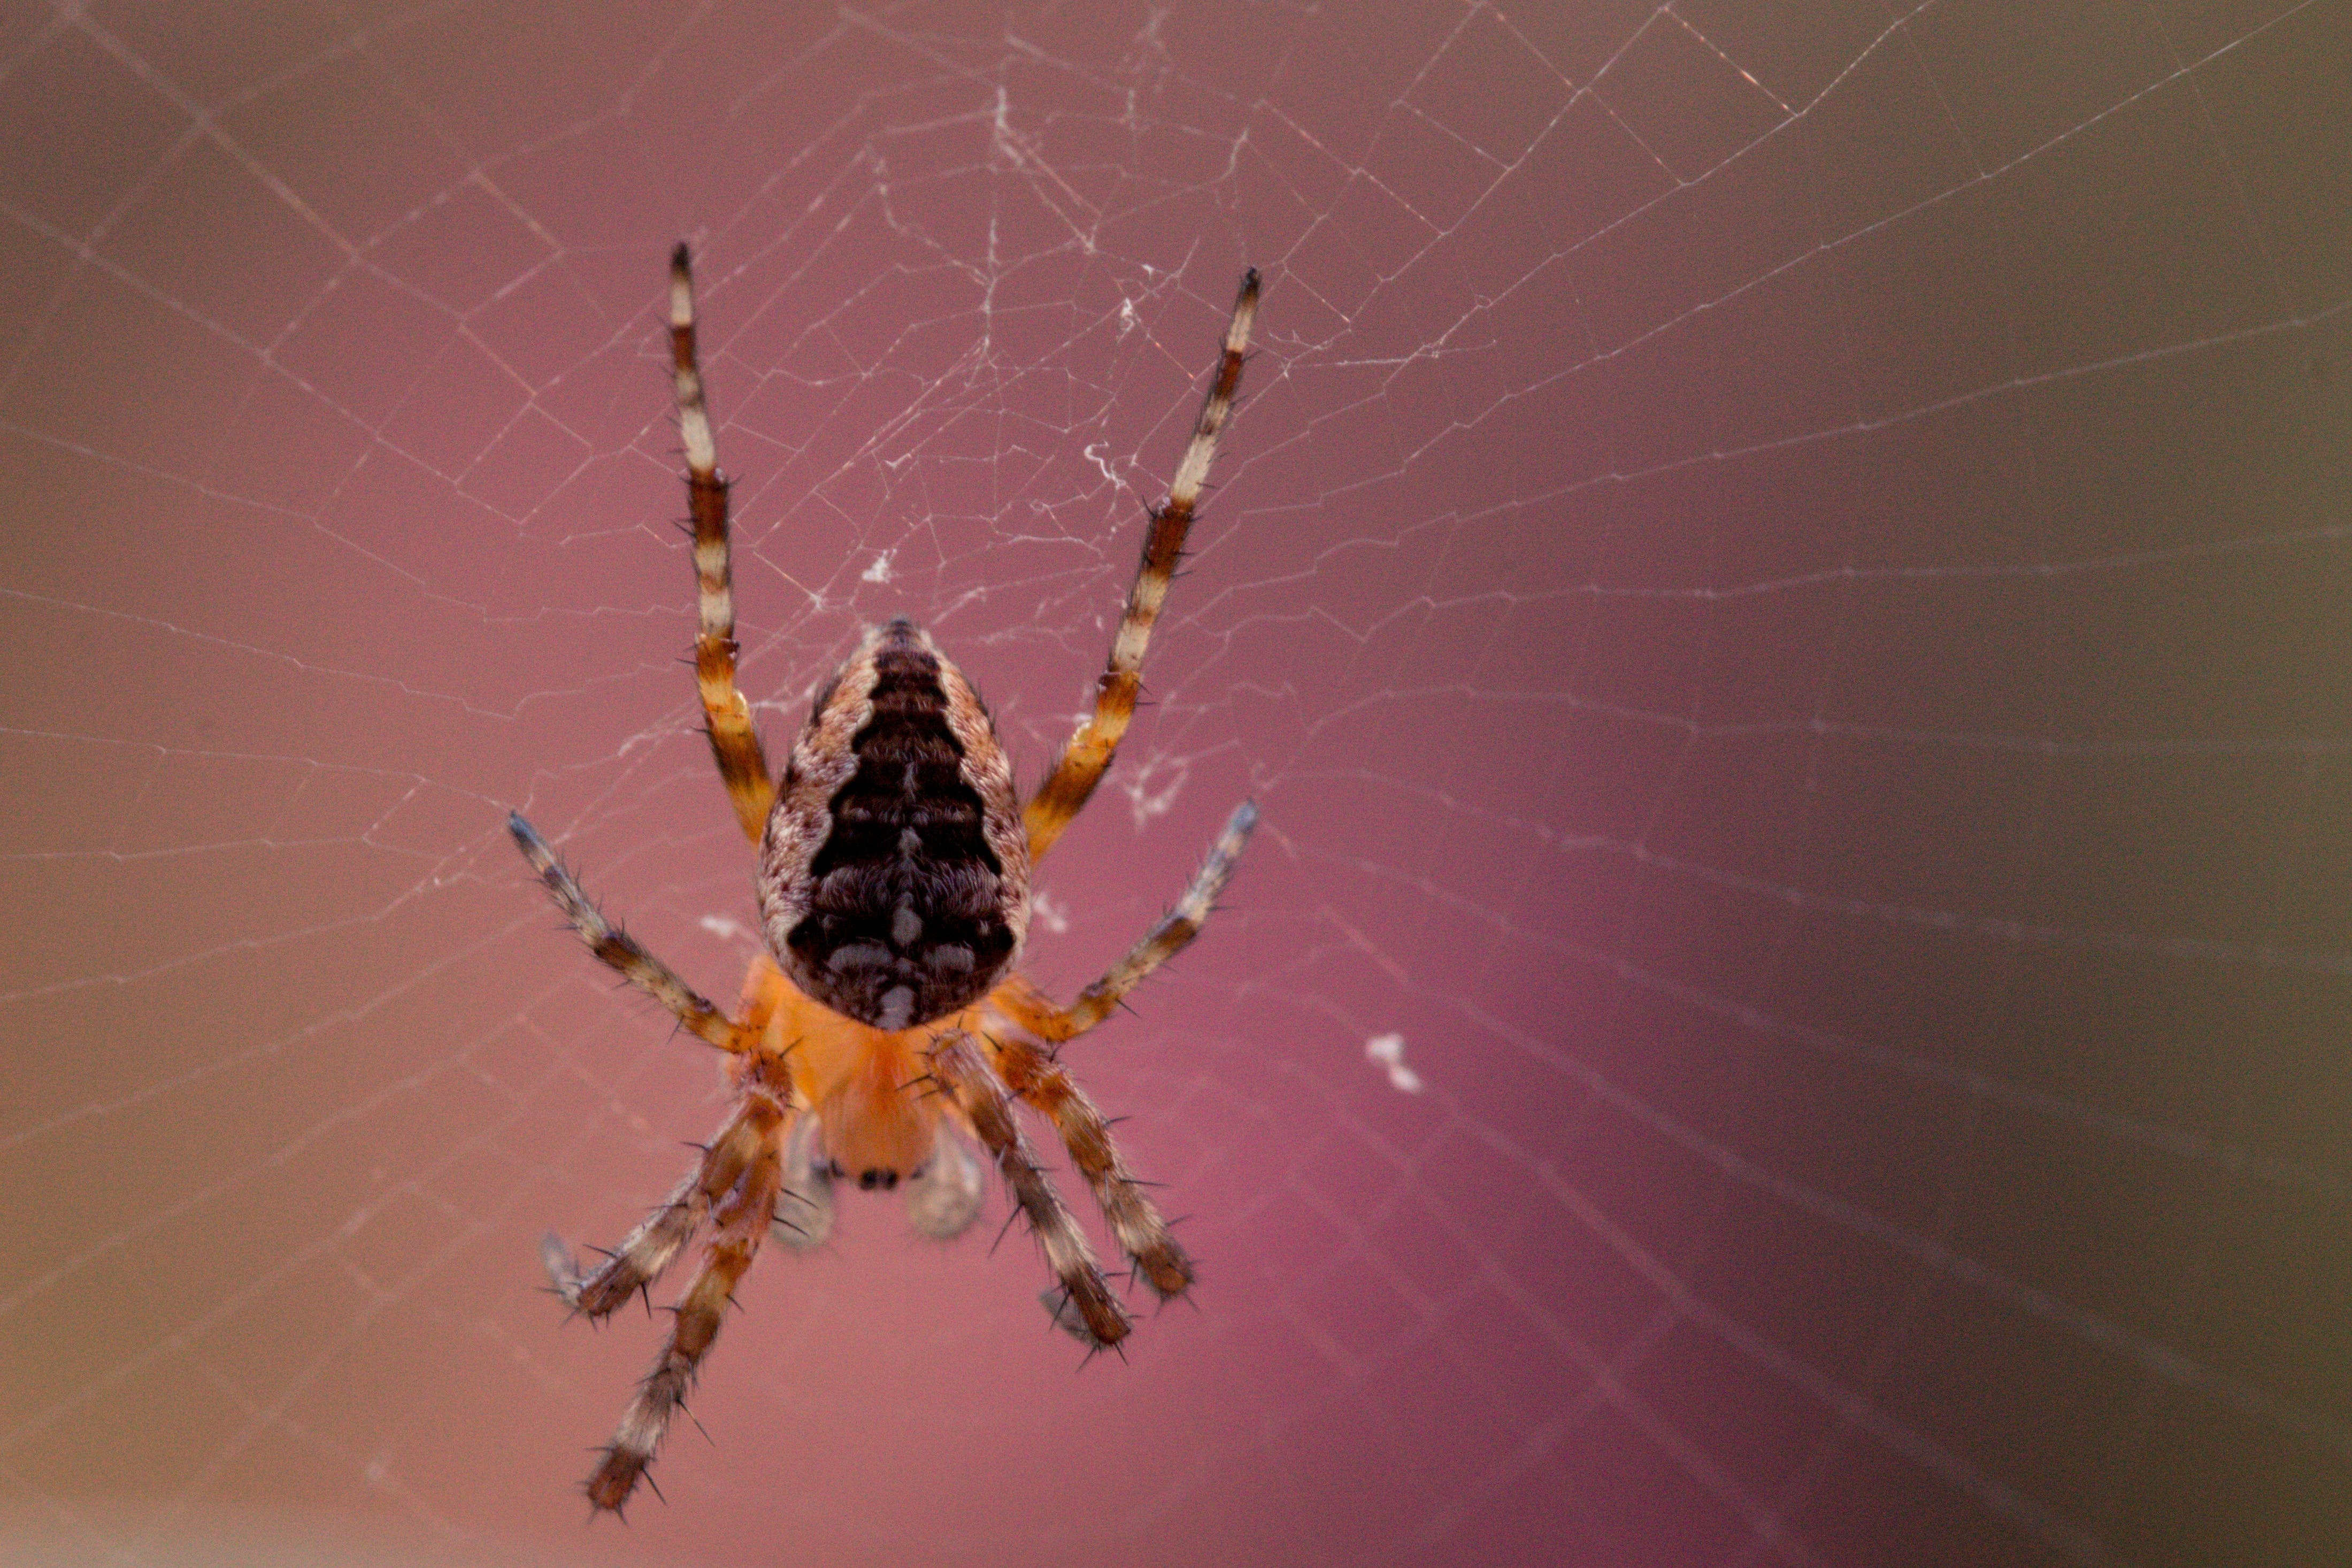 Macro Photography of Barn Spider on Spider Web